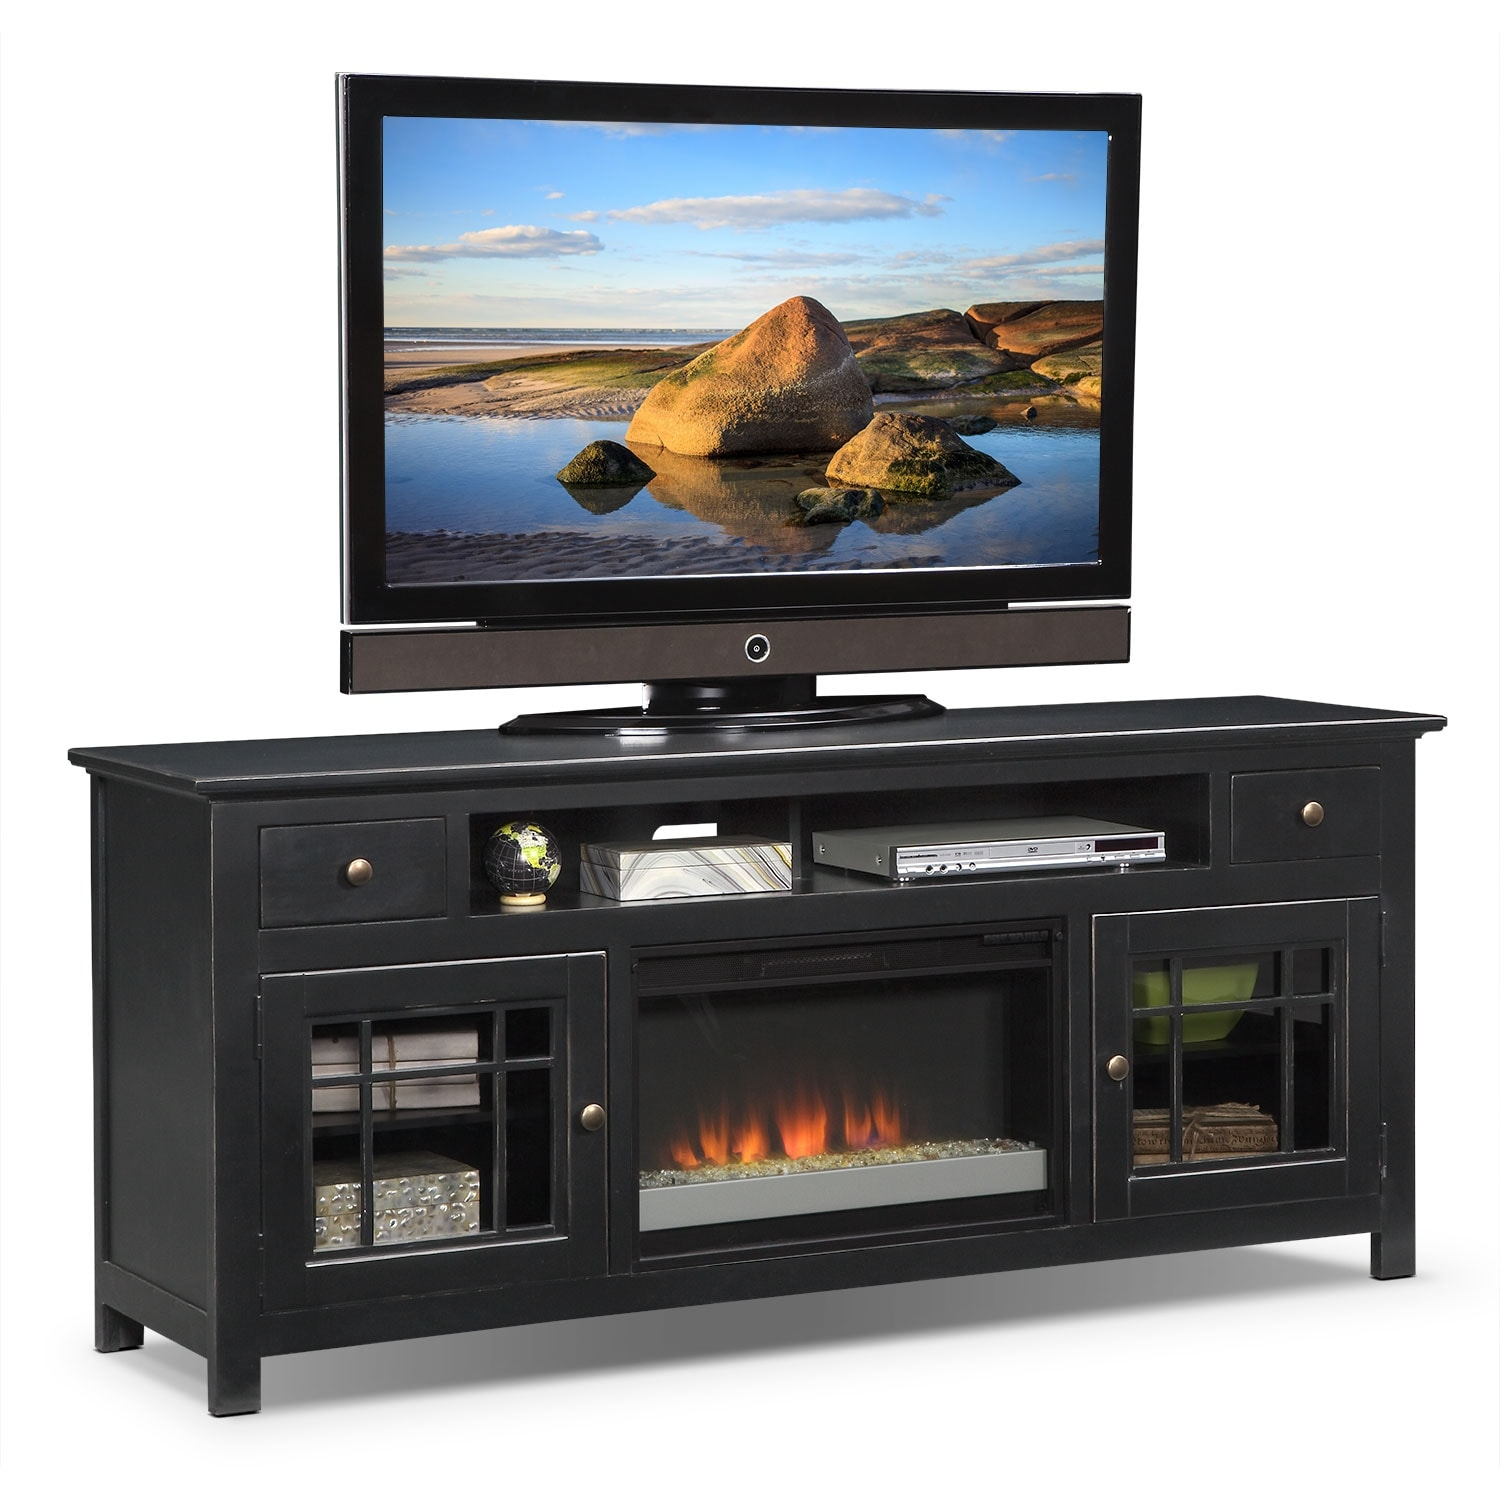 Merrick Black 74 Fireplace Tv Stand With Contemporary